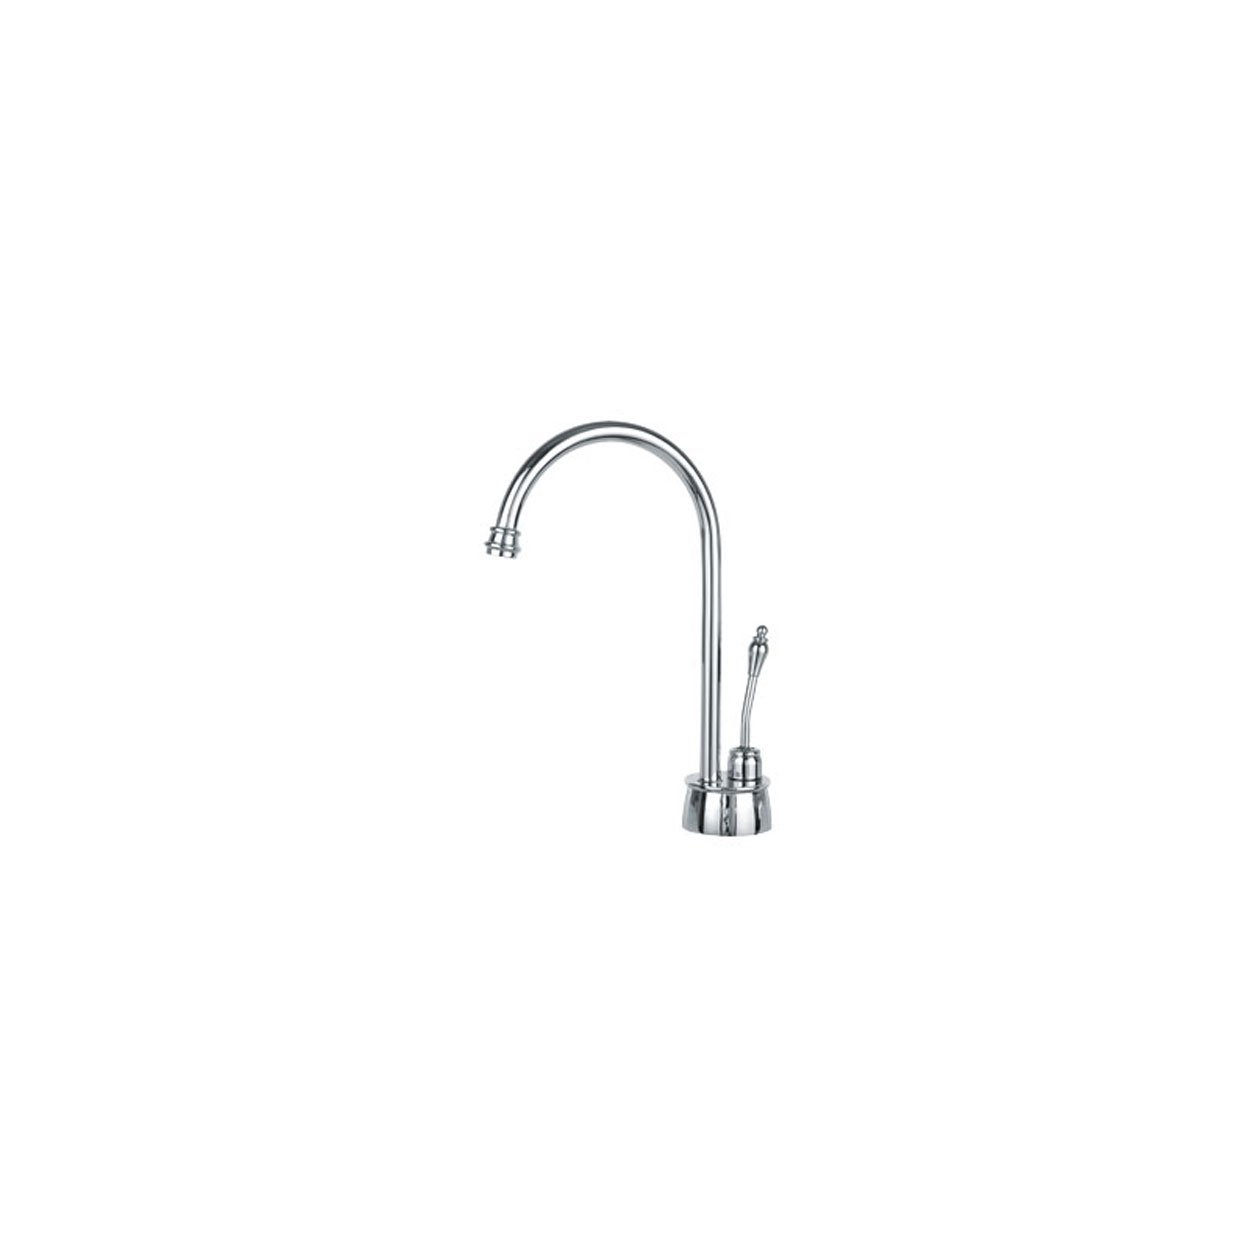 Franke LB4100 Point-Of-Use Traditional Style Hot Water Dispenser, Chrome